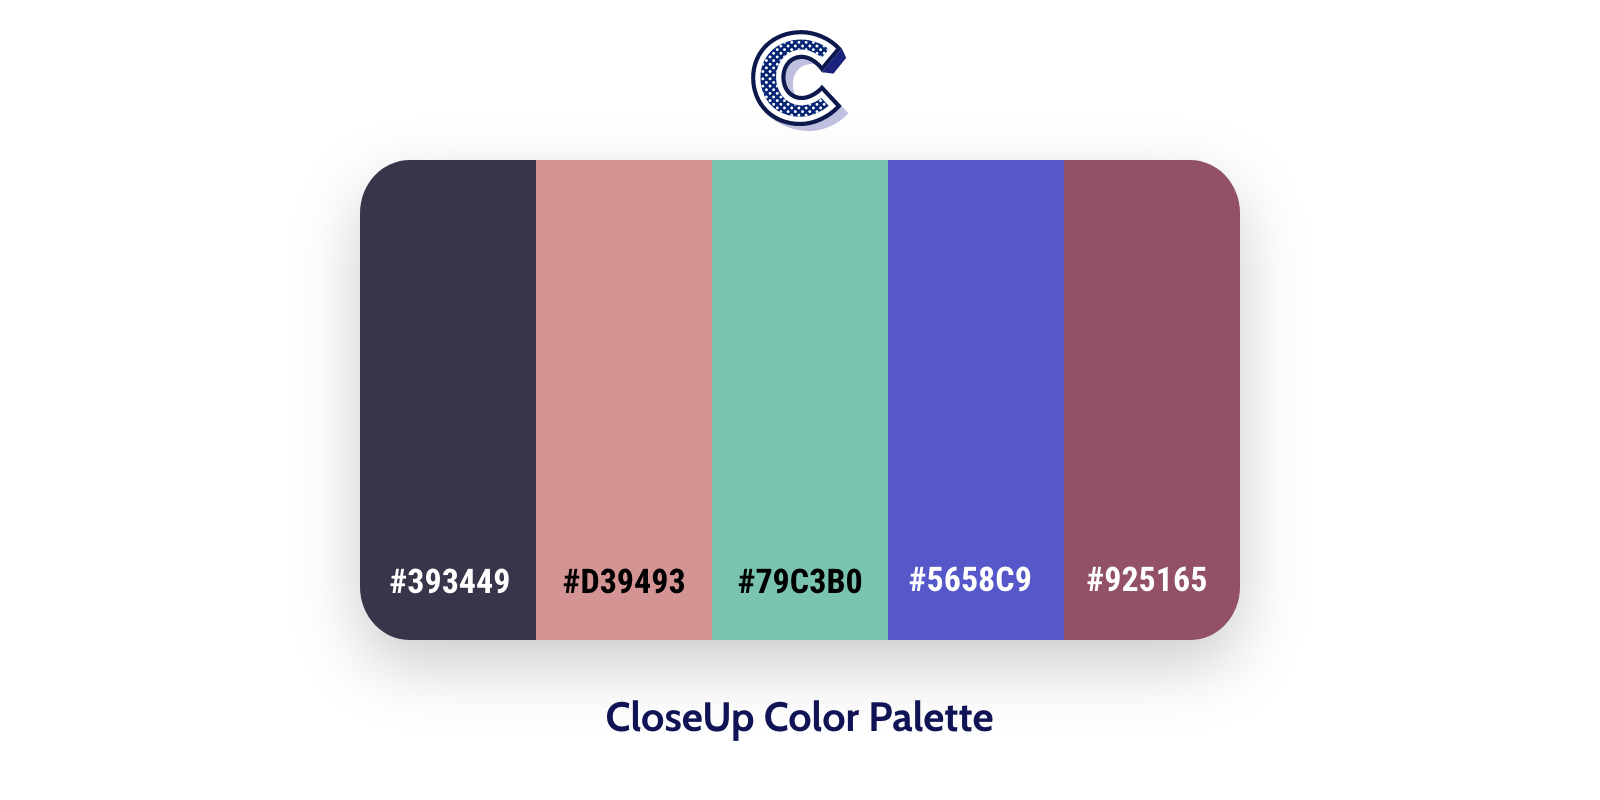 the featured image of closeup color palette